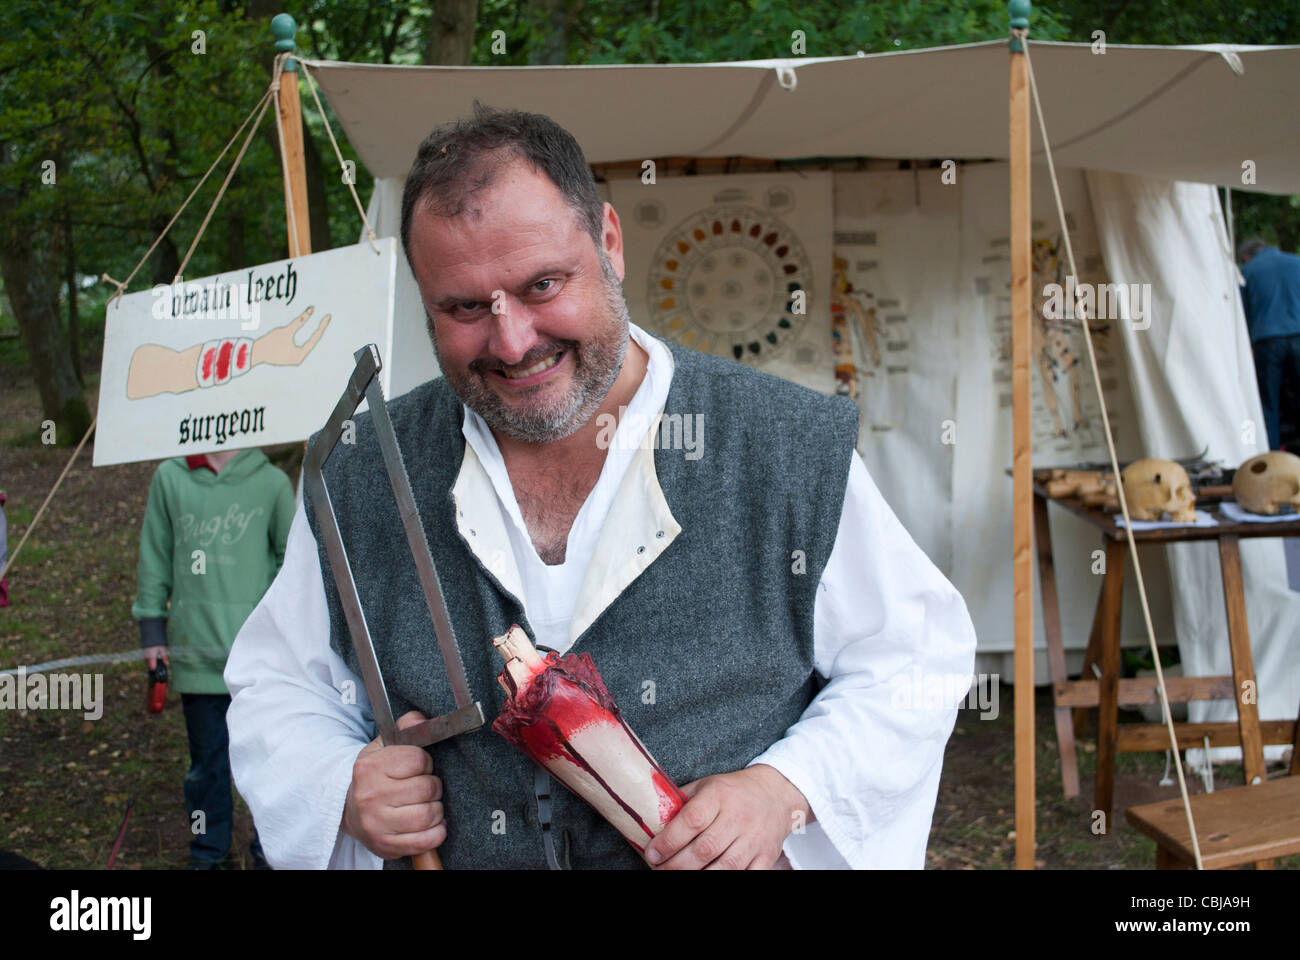 Man Dressed As Medieval Surgeon Wearing Bloody Apron Smiling And Holding Up Mock Severed Arm Saw At Robin Hood Festival